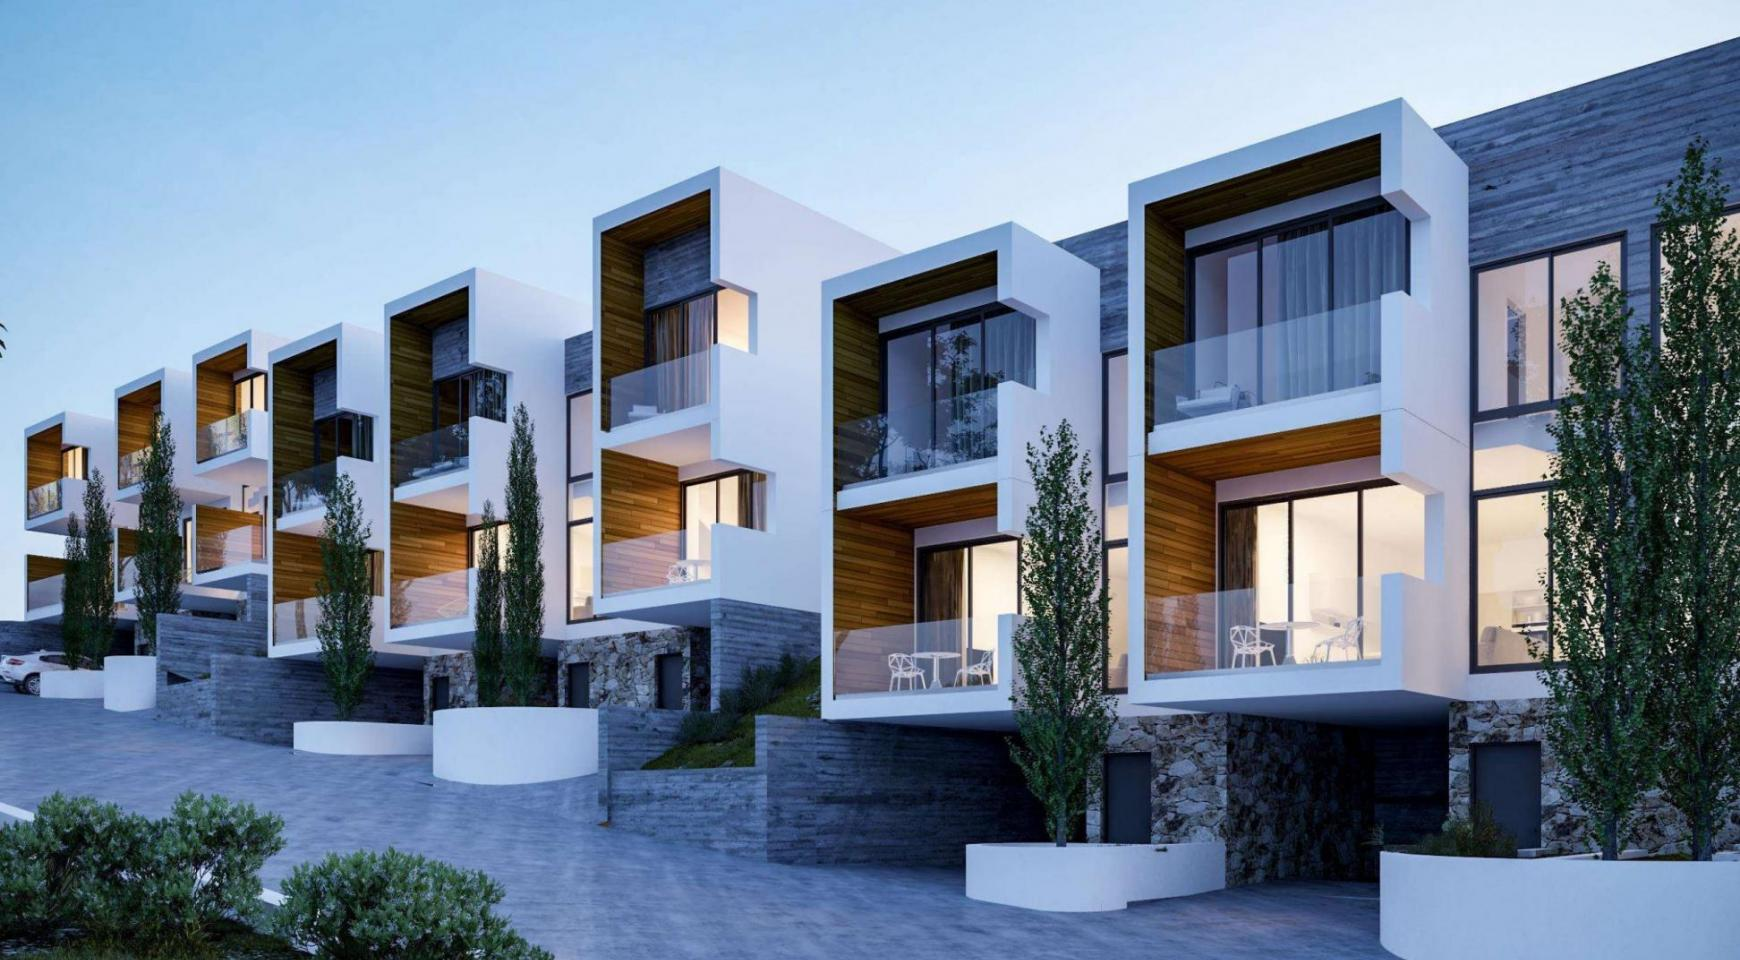 New Luxurious 2 Bedroom Townhouse in Agios Tychonas - 1